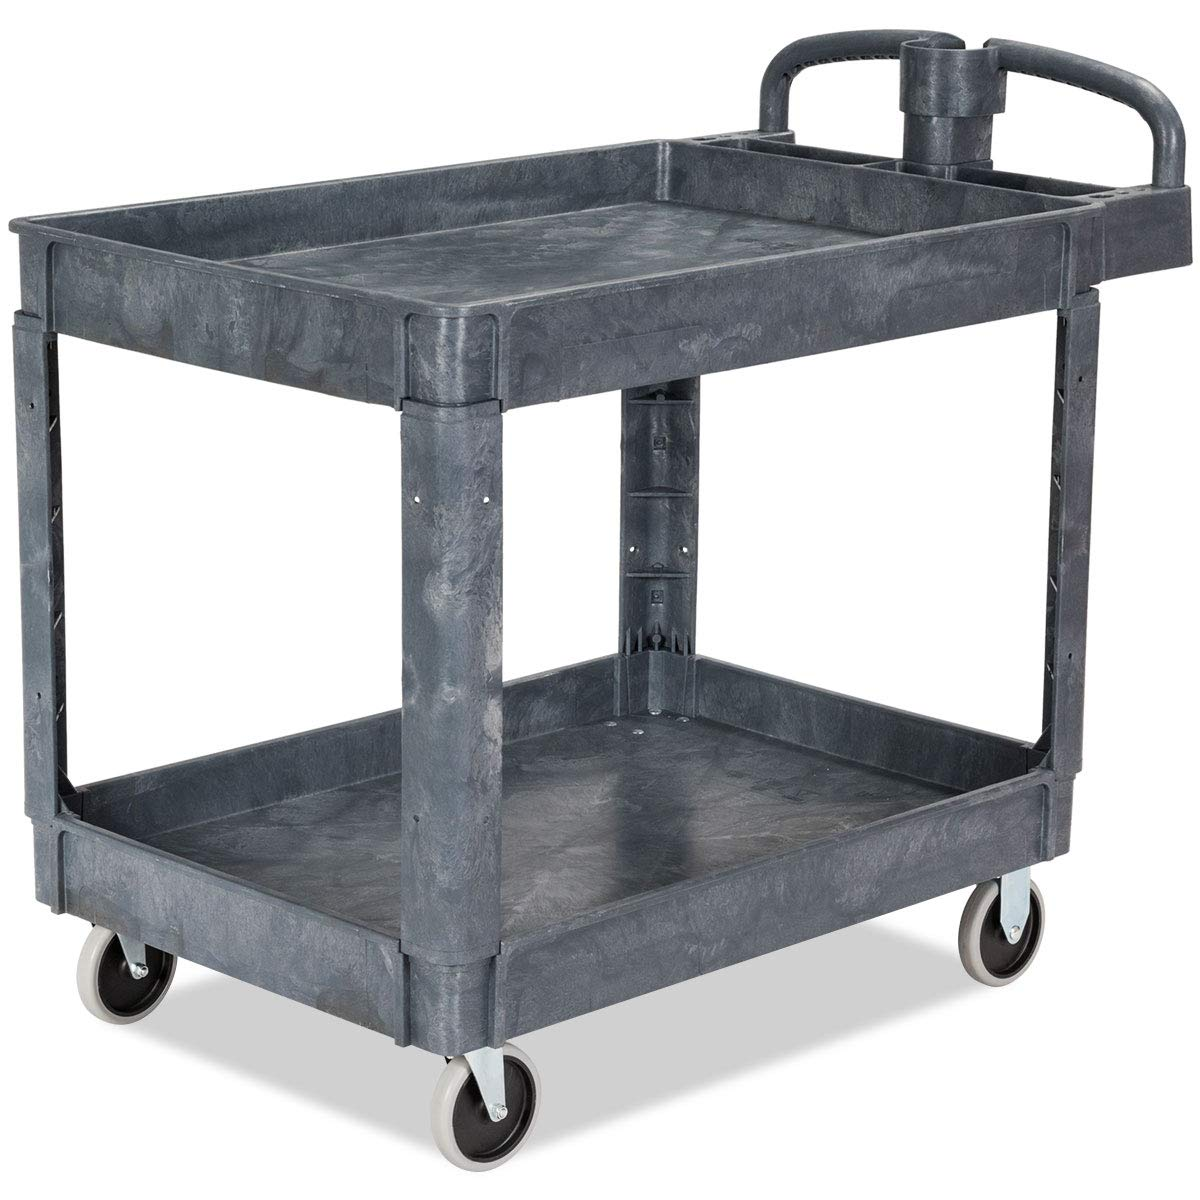 Goplus 2-Shelf Utility Cart/Service Cart with Wheels, 550 LBS Capacity Heavy Duty Plastic Rolling Utility Cart Tub Carts w/Deep Shelves, Great for Warehouse, Garage, Cleaning (43'' x 25'' x 40'')